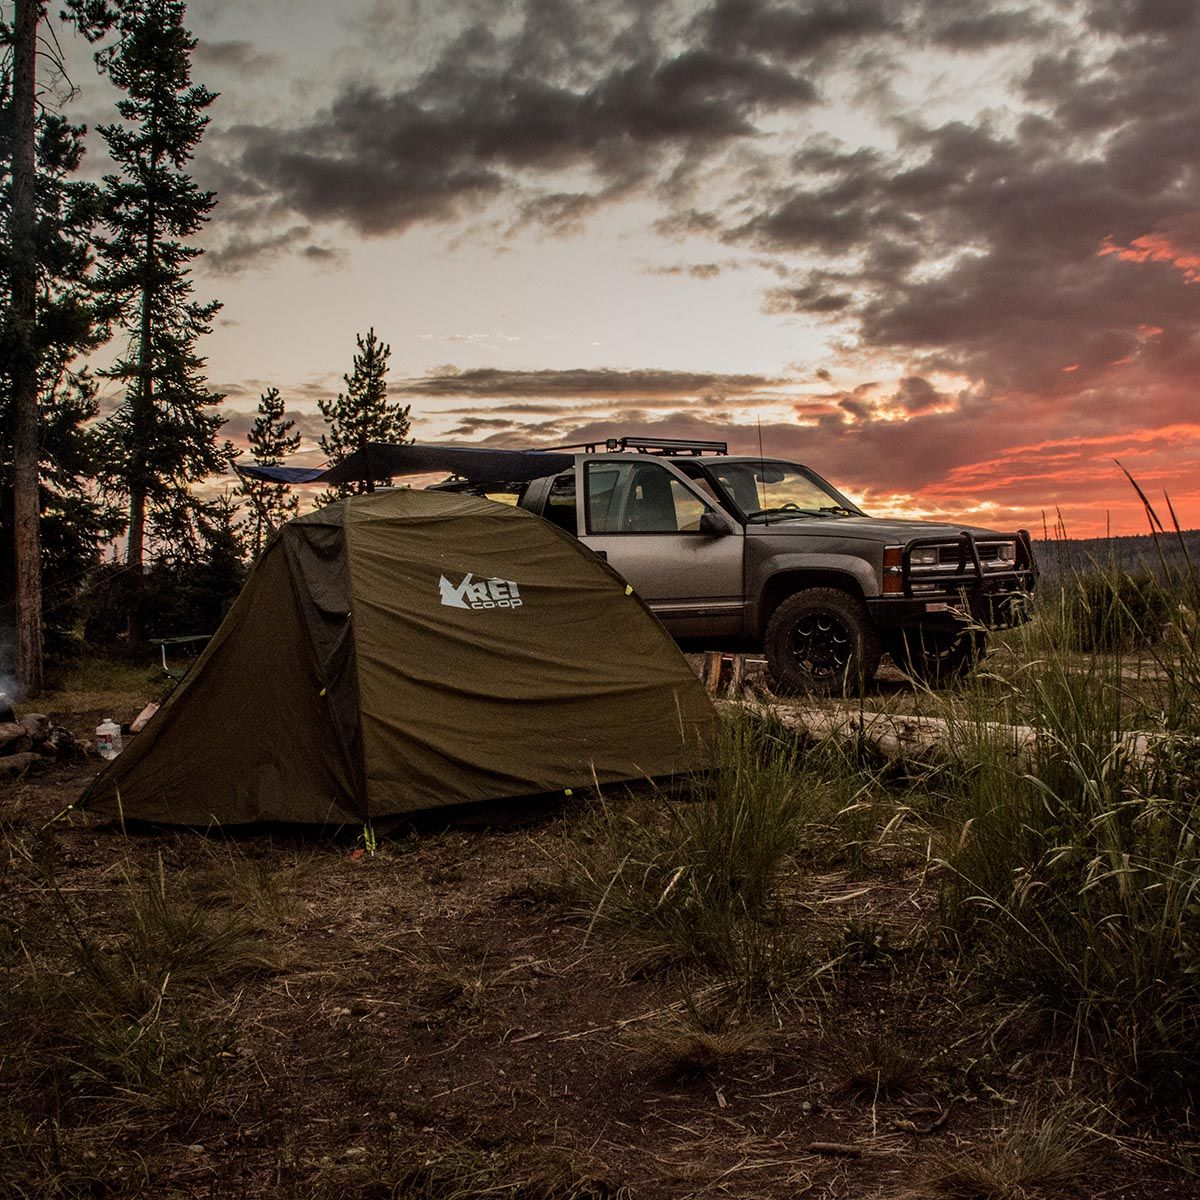 Adventure travel with 4x4 and tent in the foreground